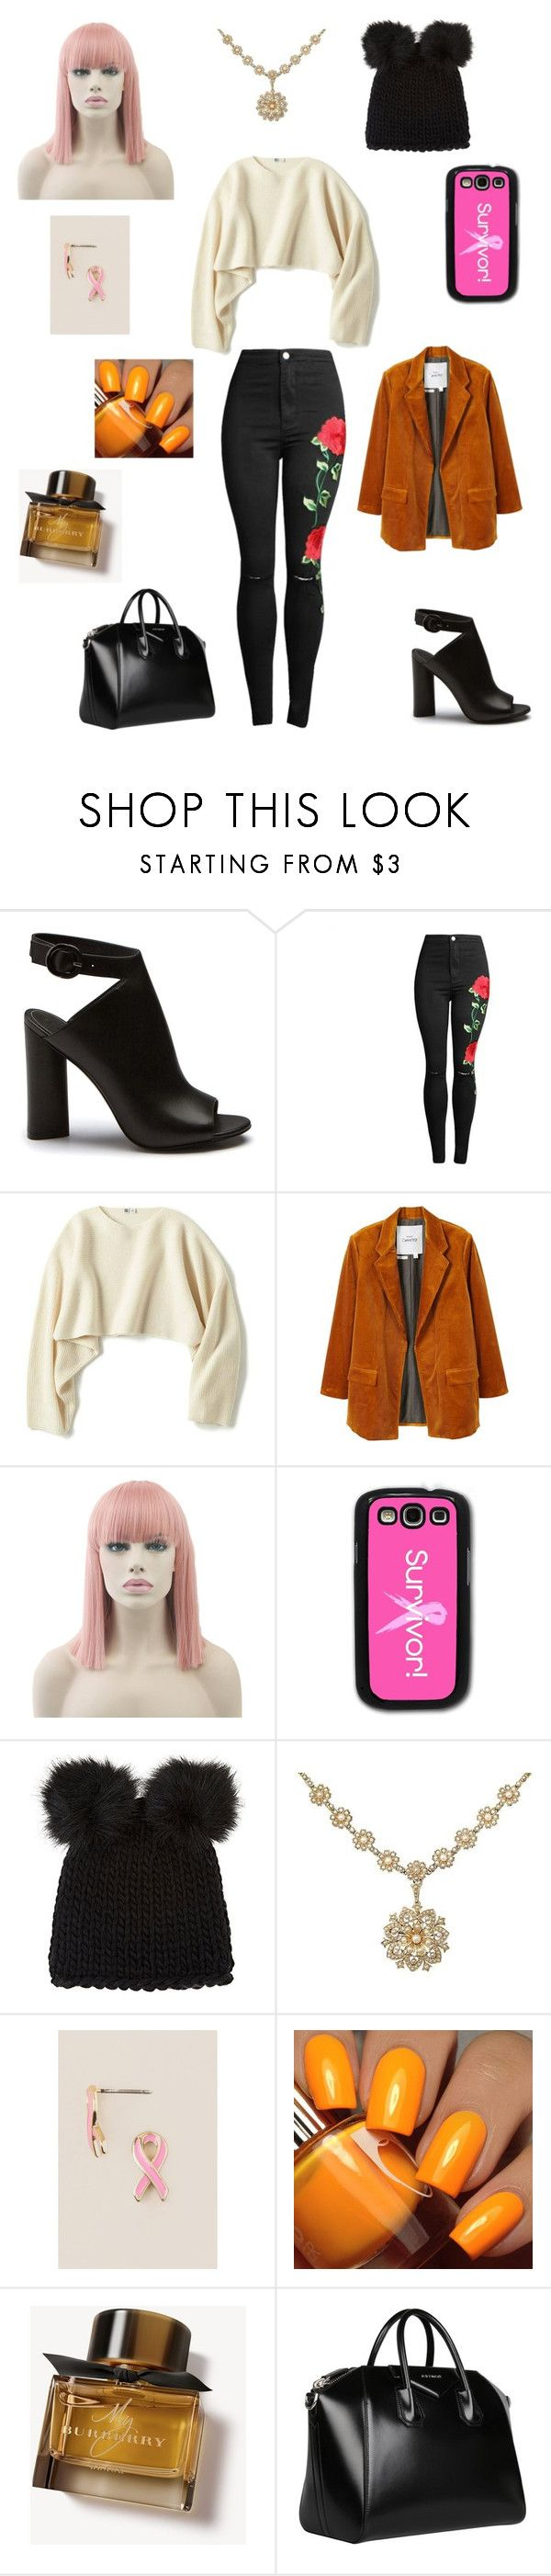 """Sans titre #2608"" by amandine-collet on Polyvore featuring mode, Uniqlo, MANGO, Samsung, Barneys New York, Francesca's, Floss Gloss, Burberry et Givenchy"